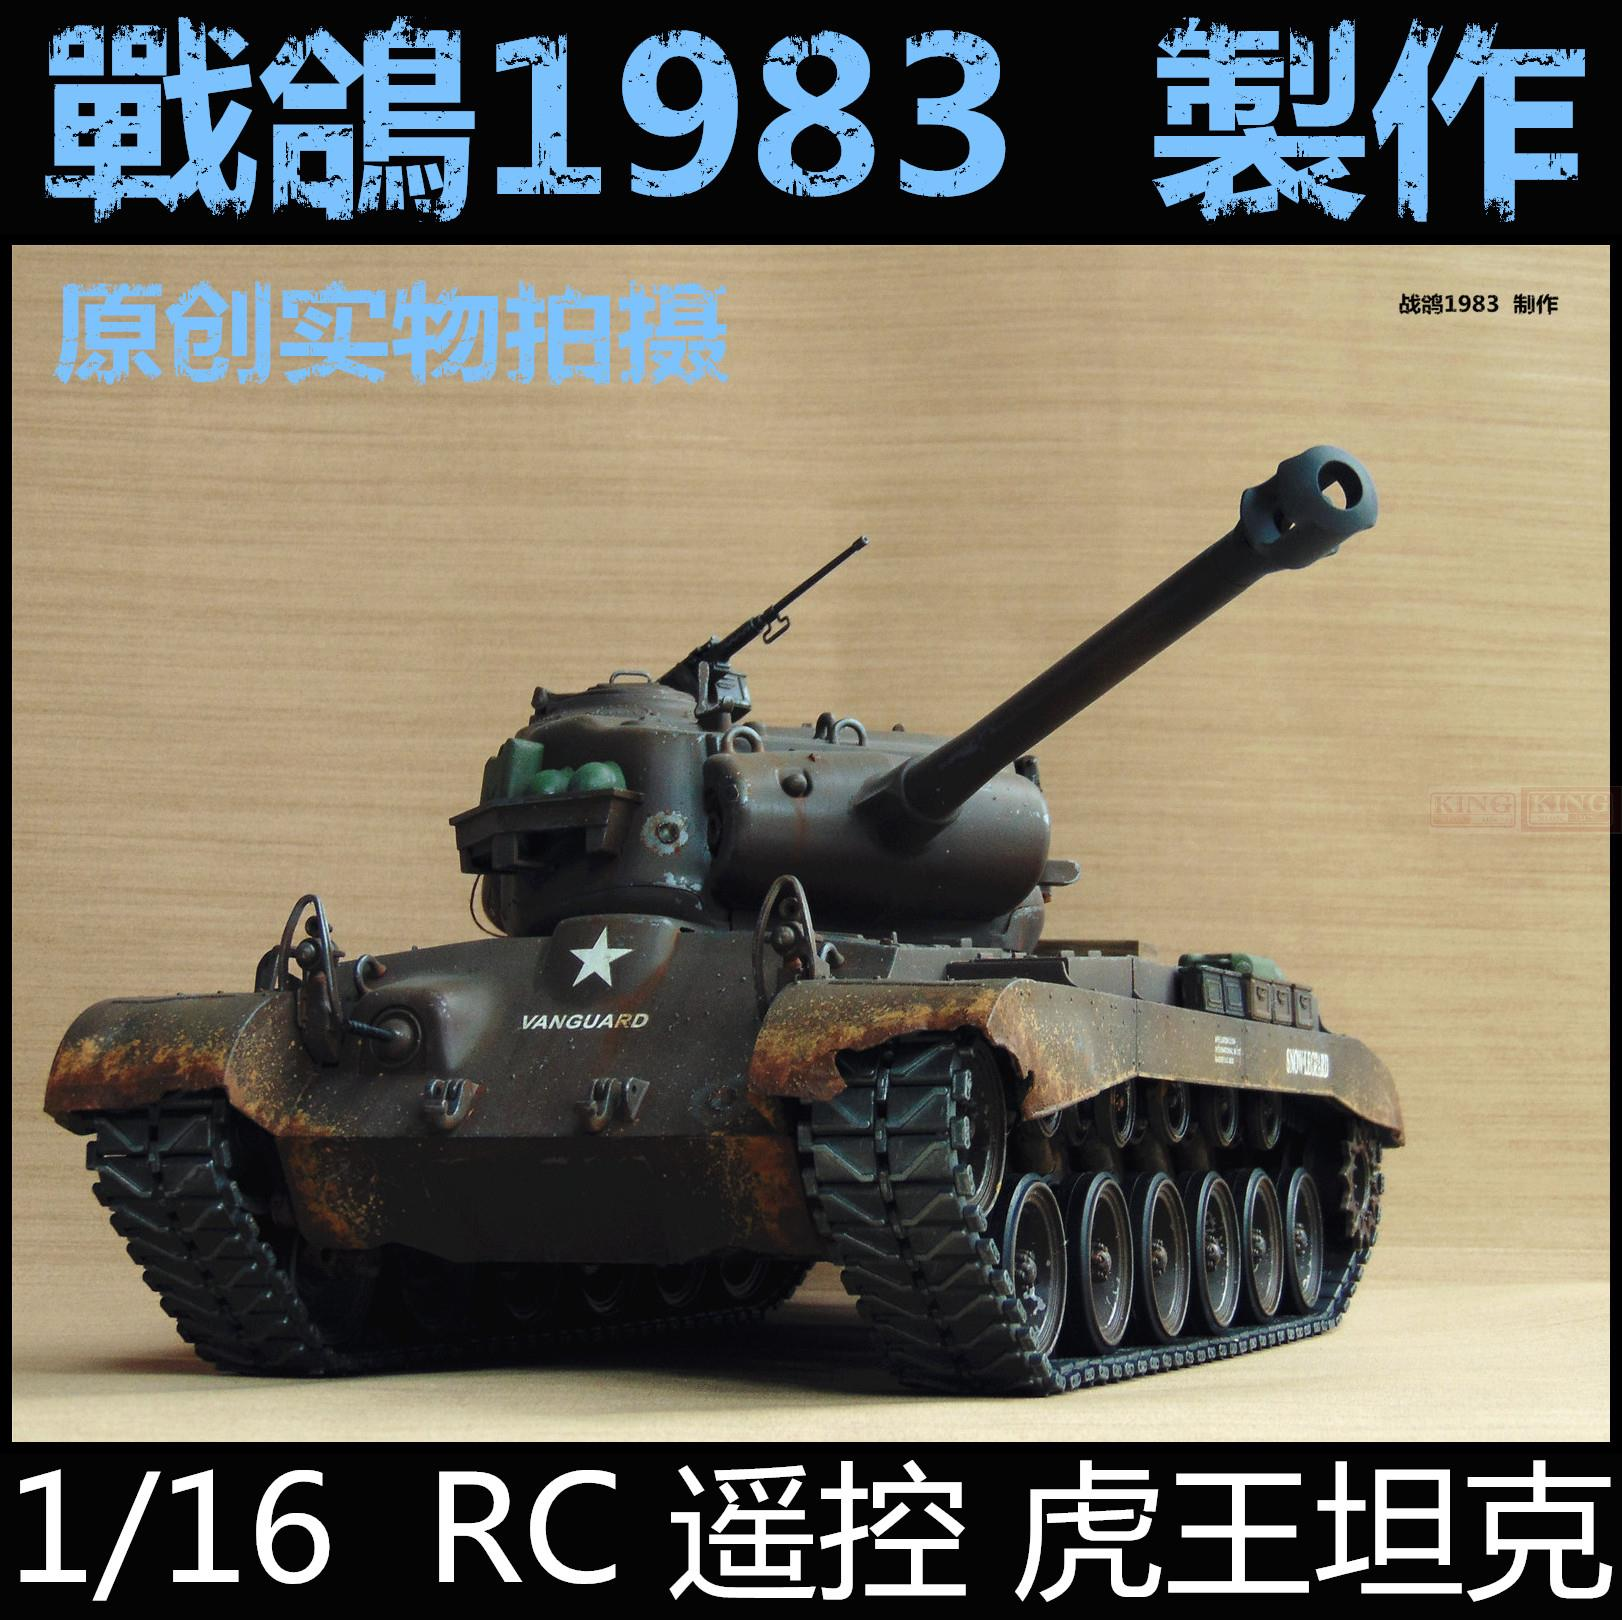 KNL HOBBY Heng Long, 1:16 Pershing RC remote control tank model foundry heavy coating of paint to do the old upgrade цены онлайн